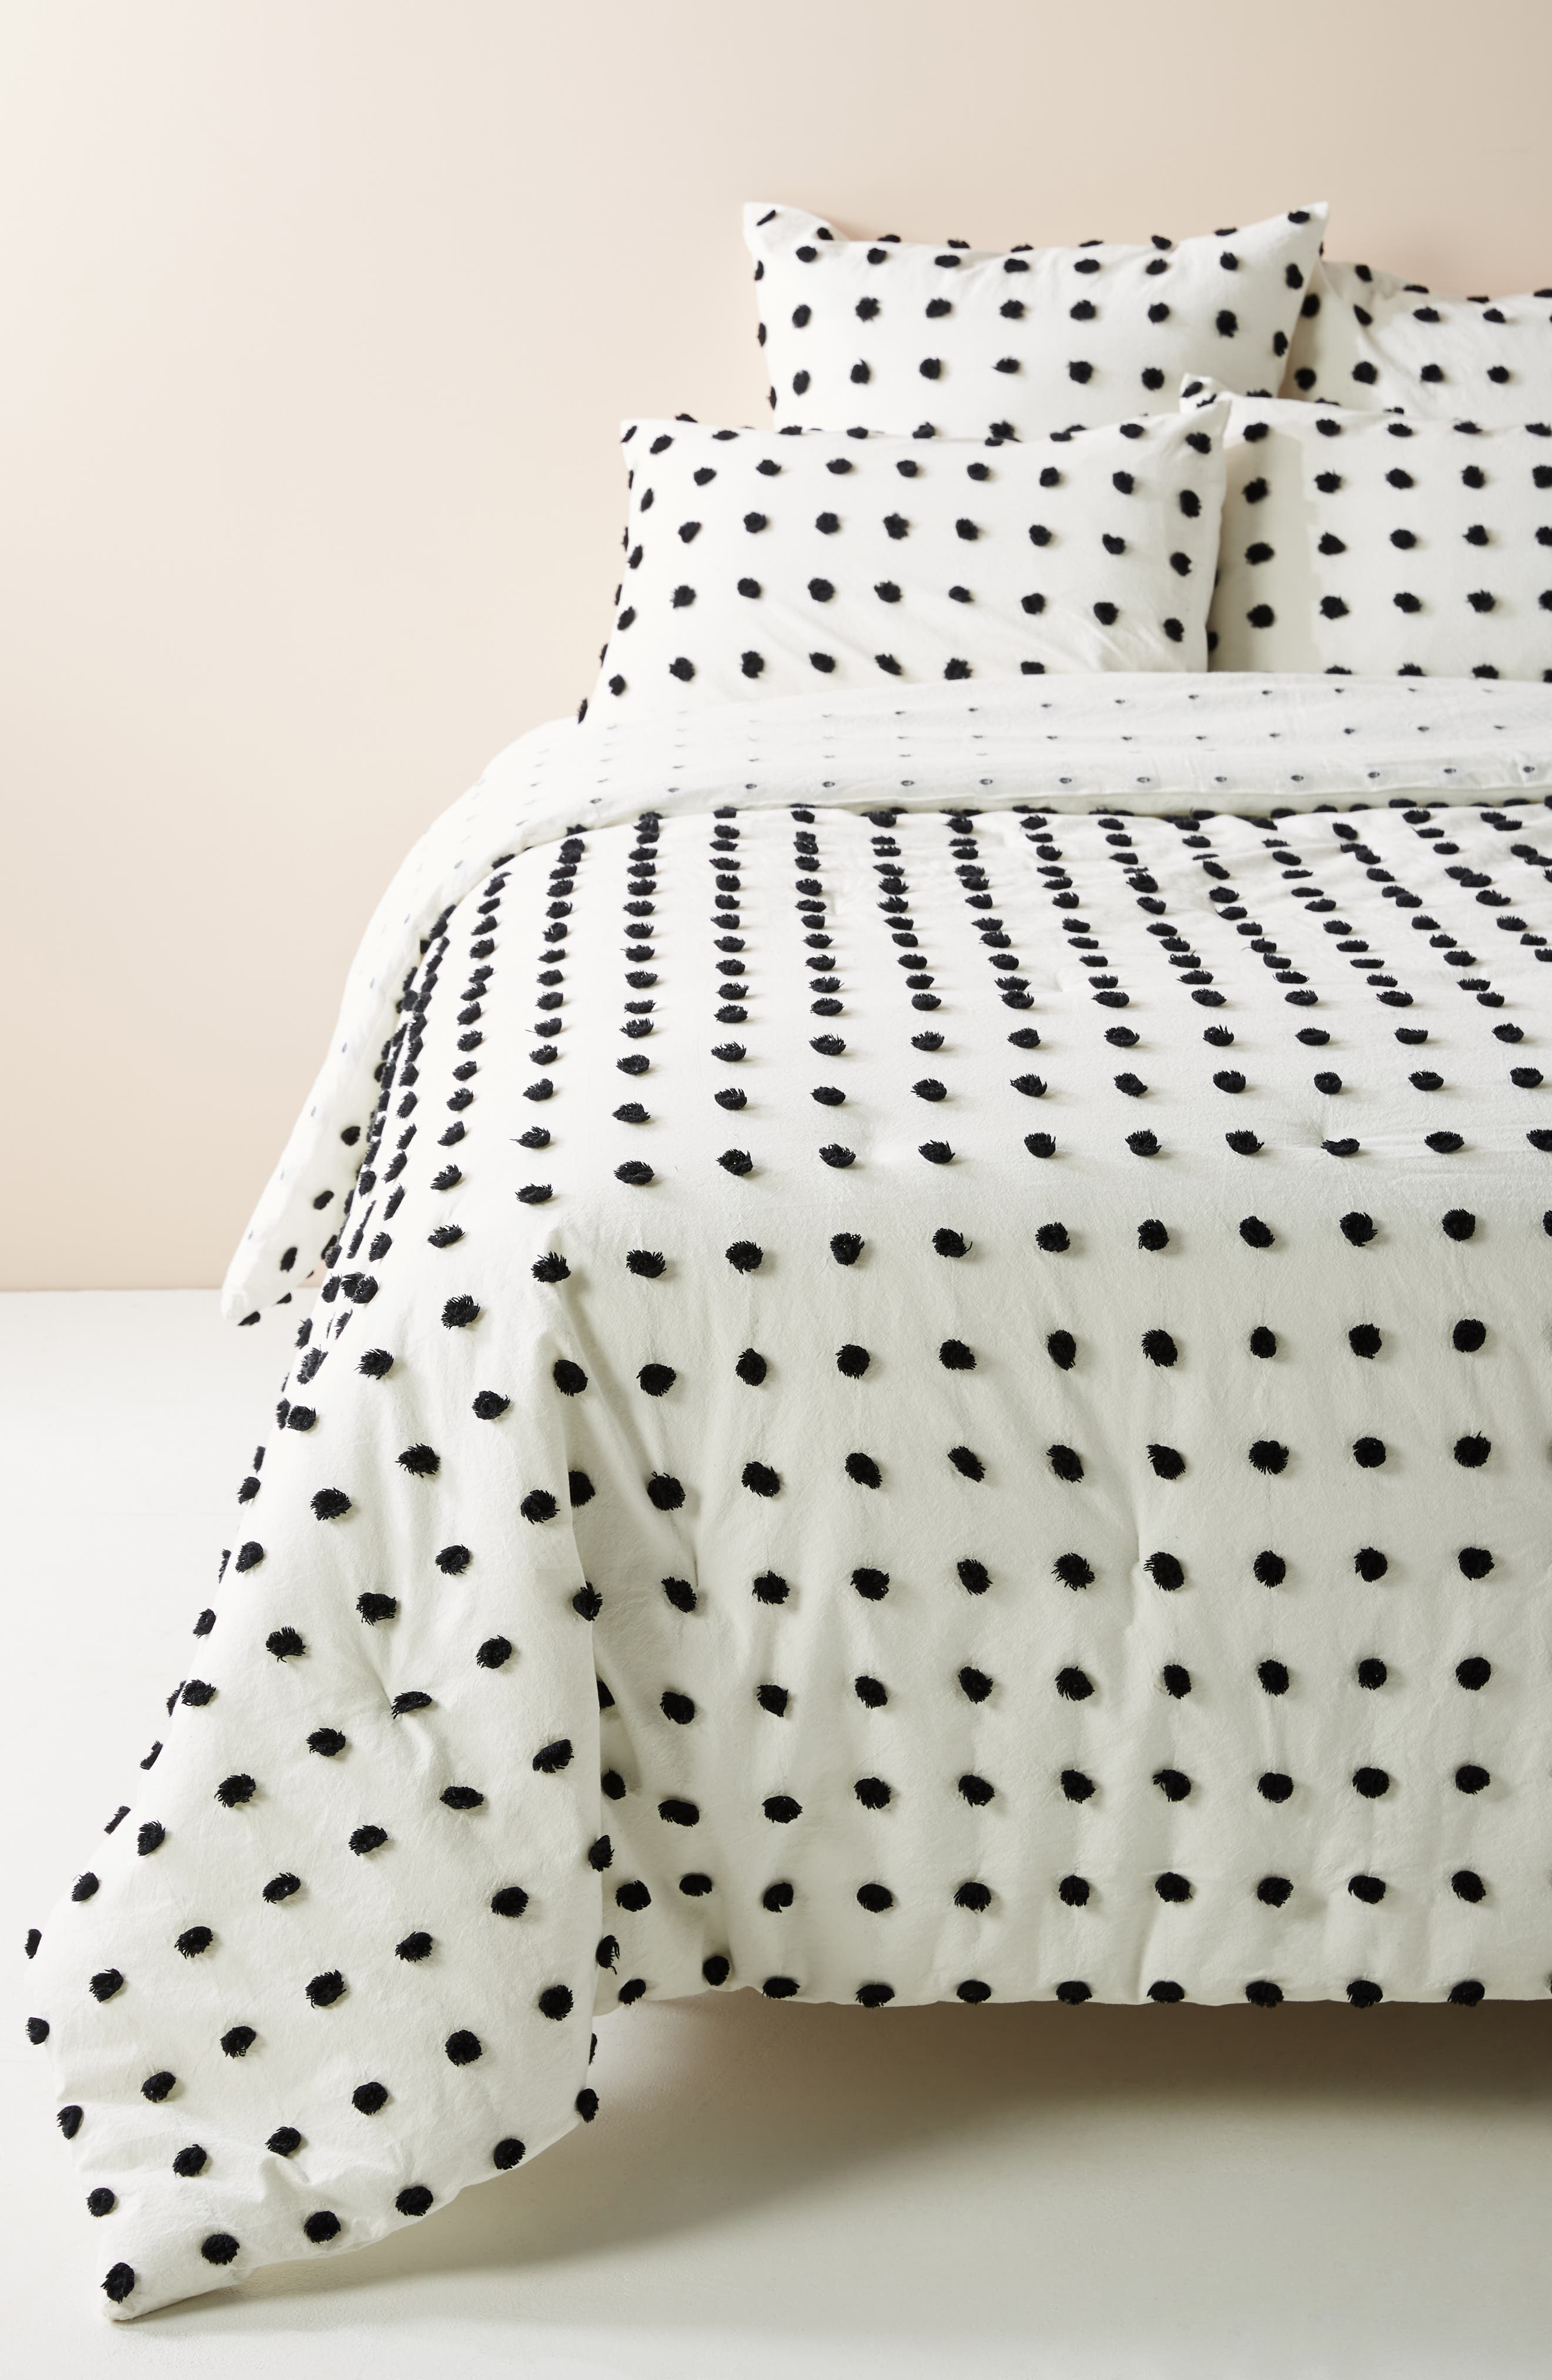 anthropologie tufted makers quilt, size full - white